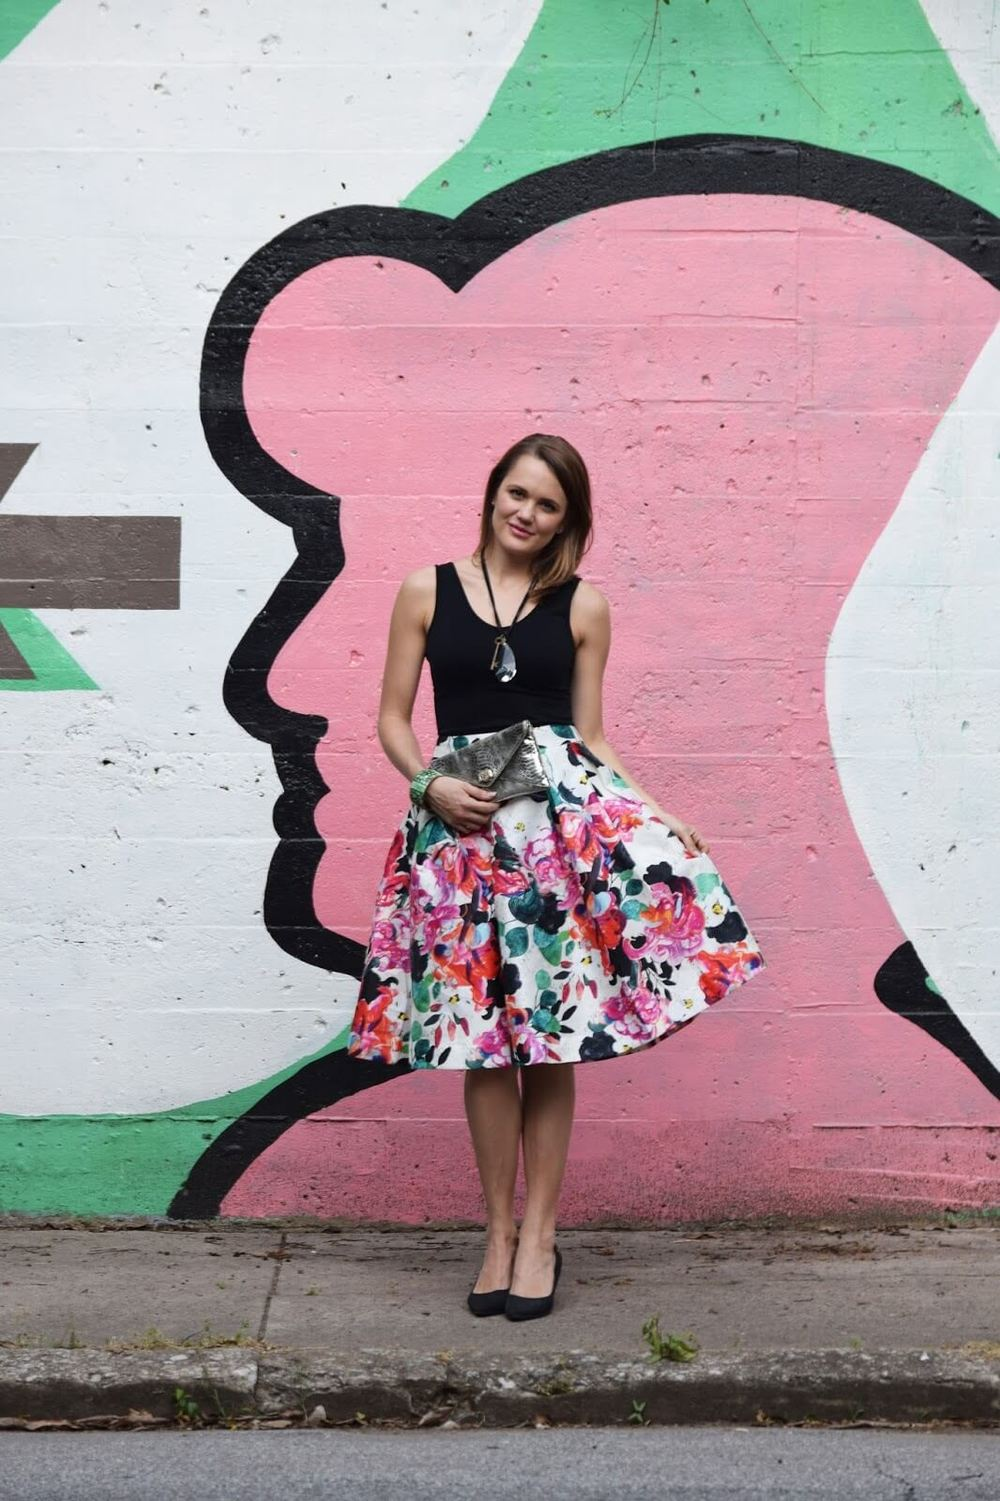 FASHION BLOGGER INTERVIEW WITH ALEXANDRA NICOLE